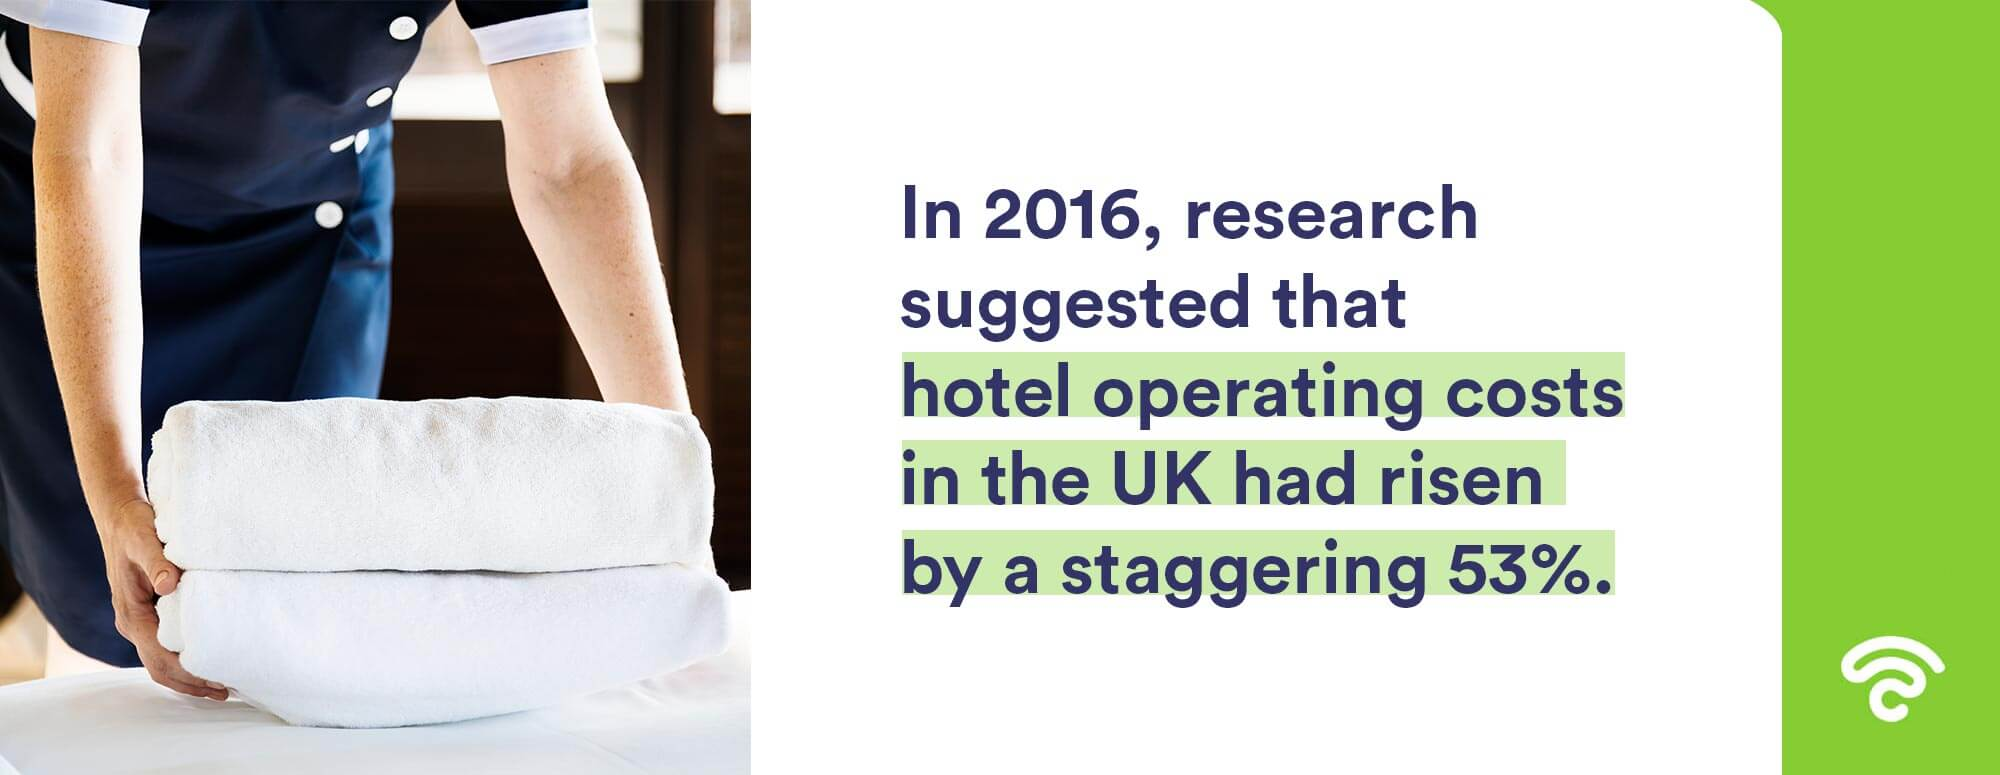 average hotel operating costs